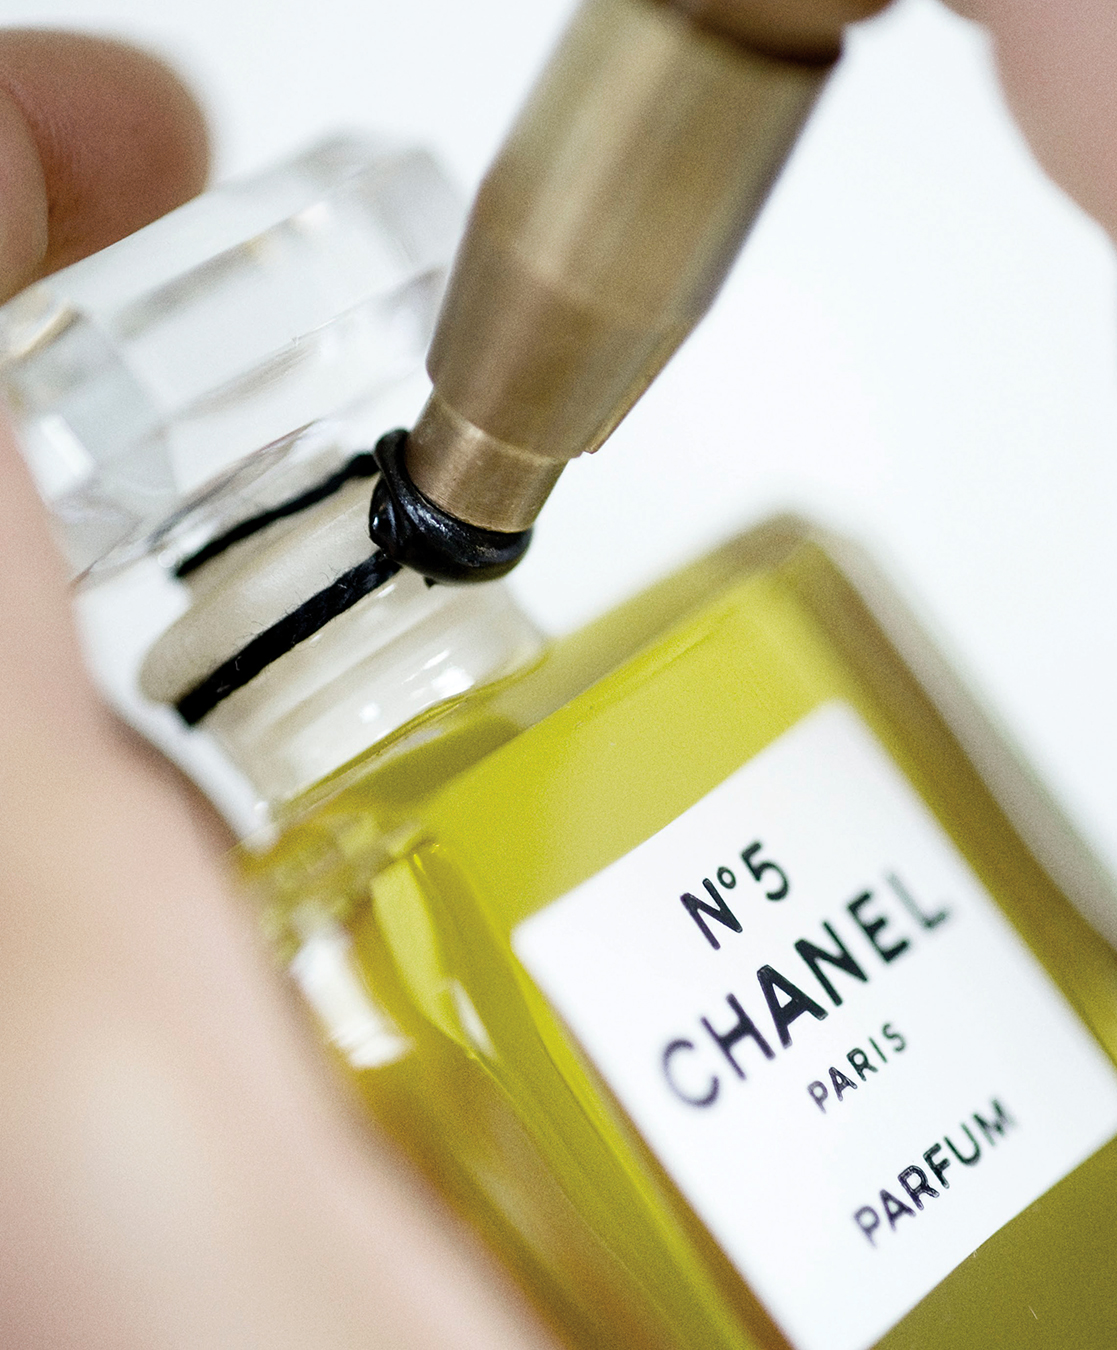 NUVO Magazine: Cultivating Chanel No. 5